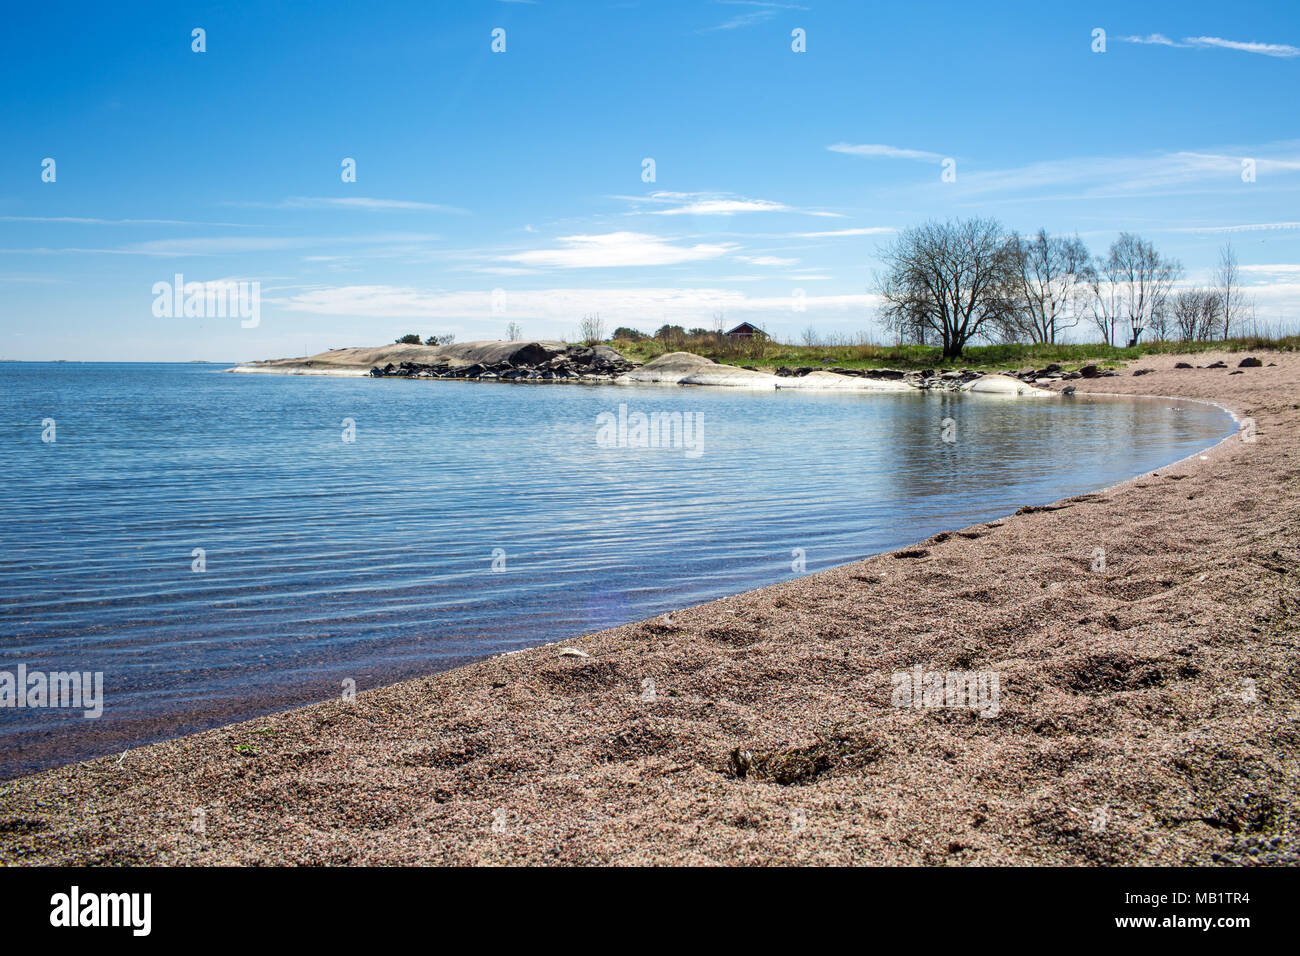 Finland,Hanko Early Summer. Scenic view of Baltic sea, and blue sky. Peaceful Finnish landscape. - Stock Image